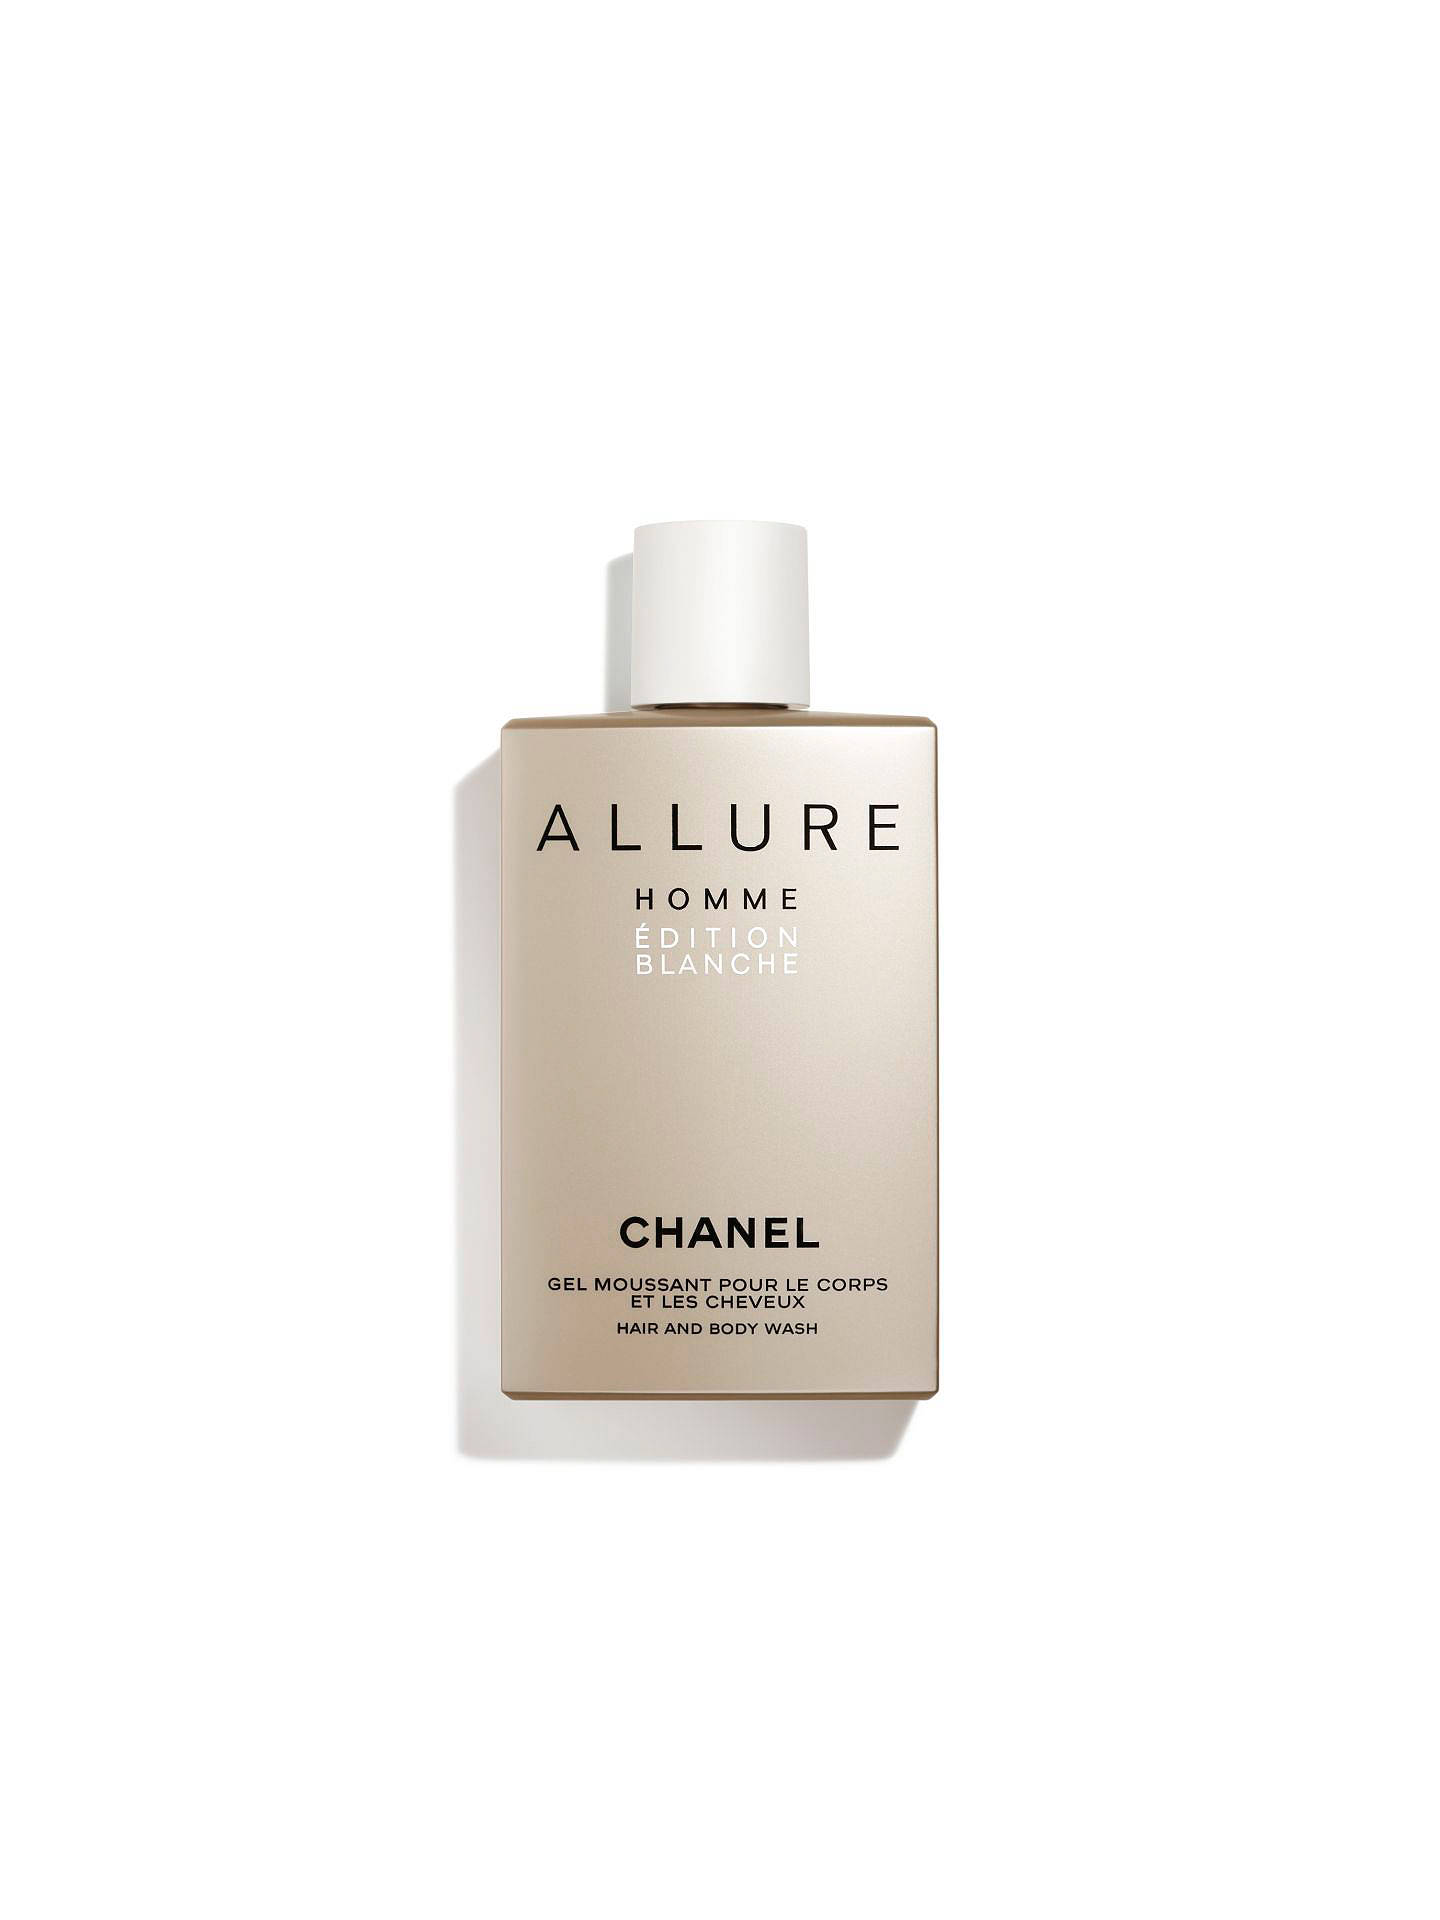 b81ab0ca720843 BuyCHANEL ALLURE HOMME ÉDITION BLANCHE Hair and Body Wash Online at  johnlewis.com